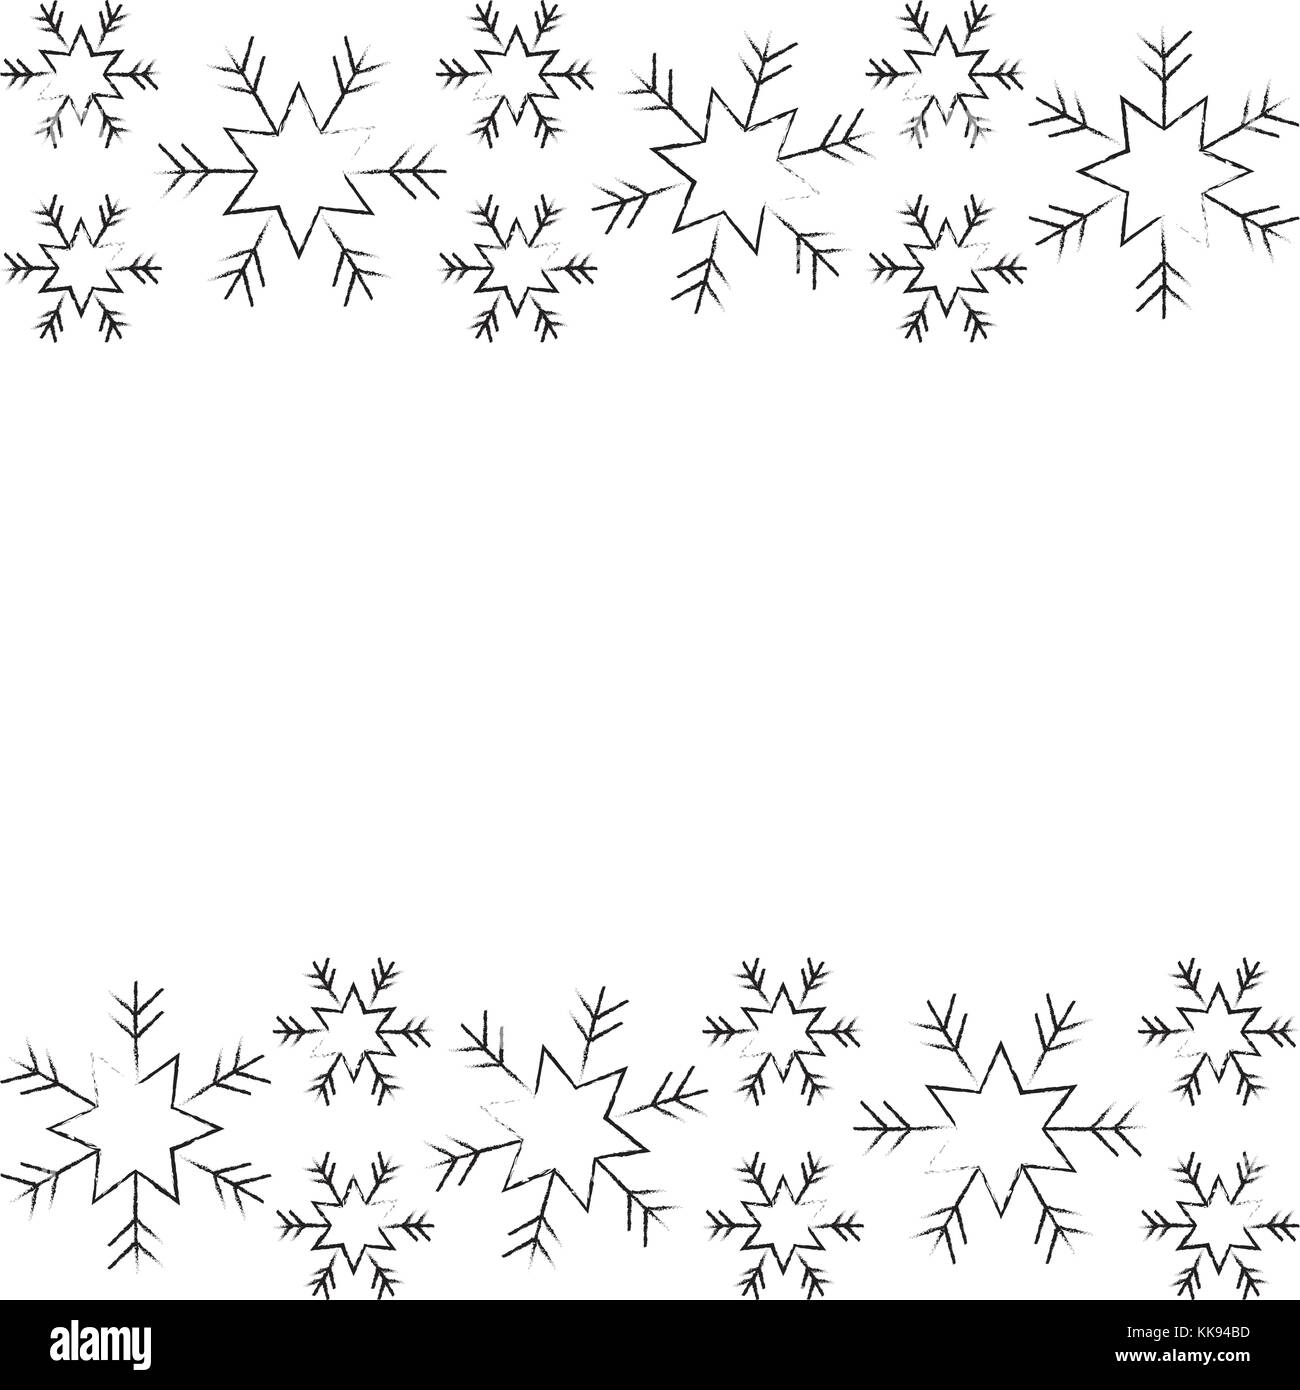 Christmas Border Black And White.Christmas Border Black And White Stock Photos Images Alamy